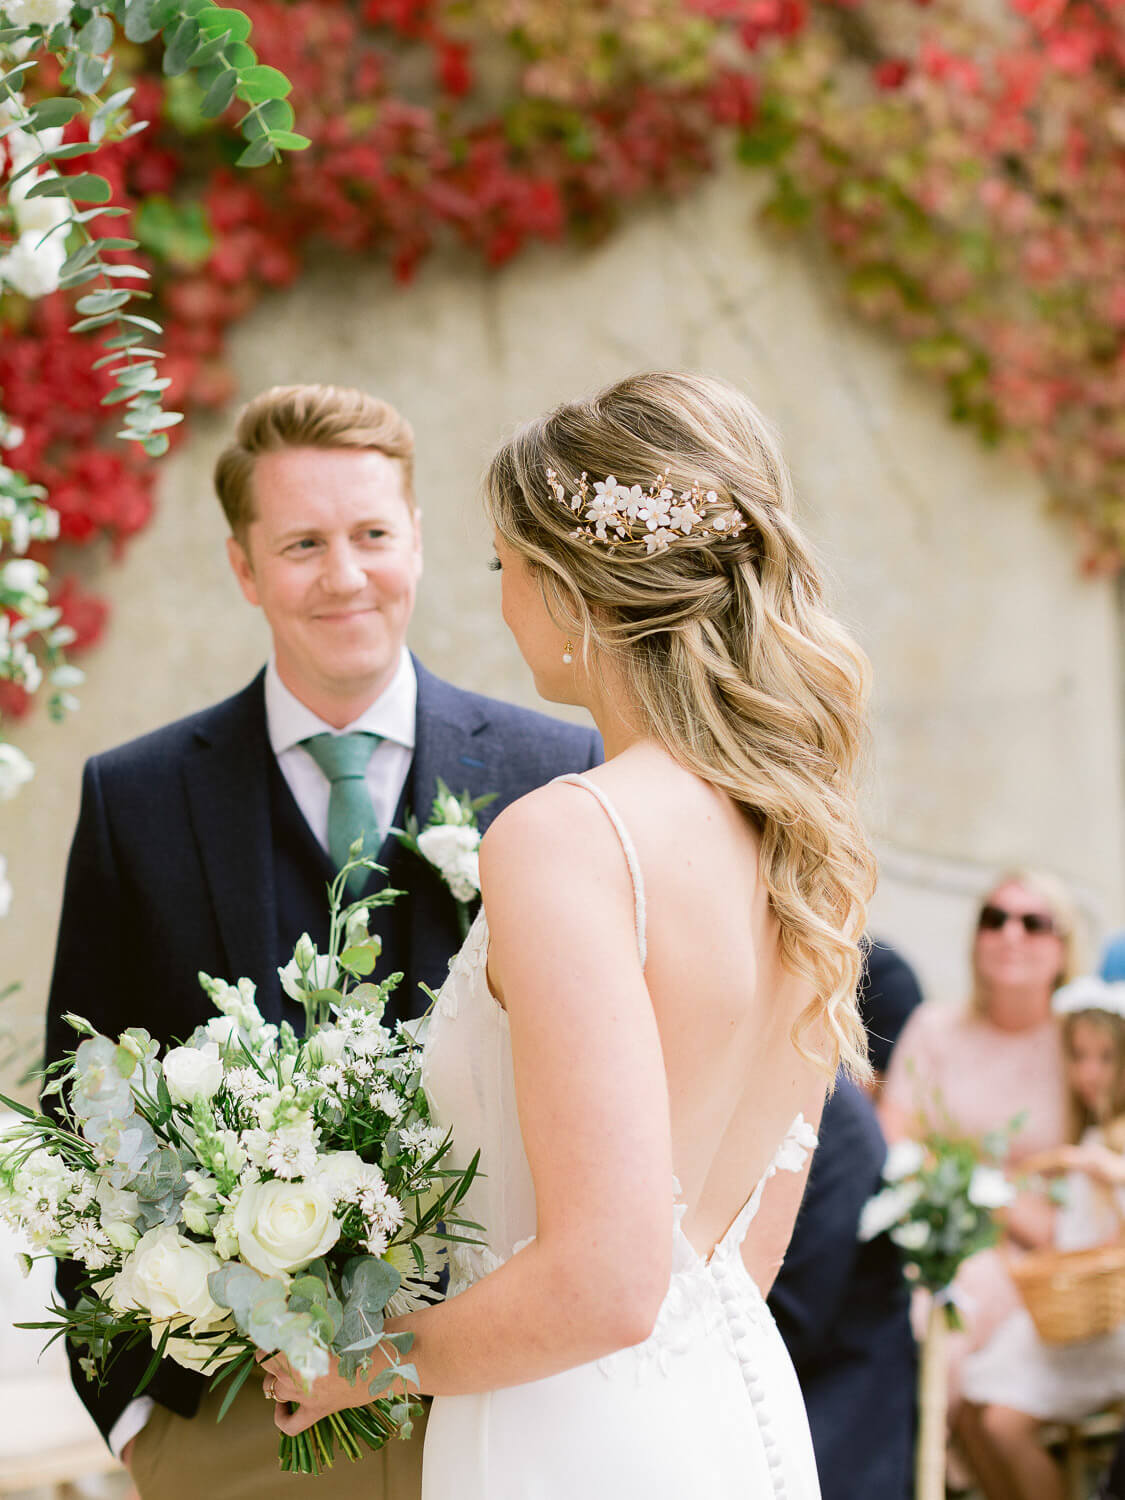 endearing couple look during an outdoor wedding ceremony in Portugal by Portugal Wedding Photographer